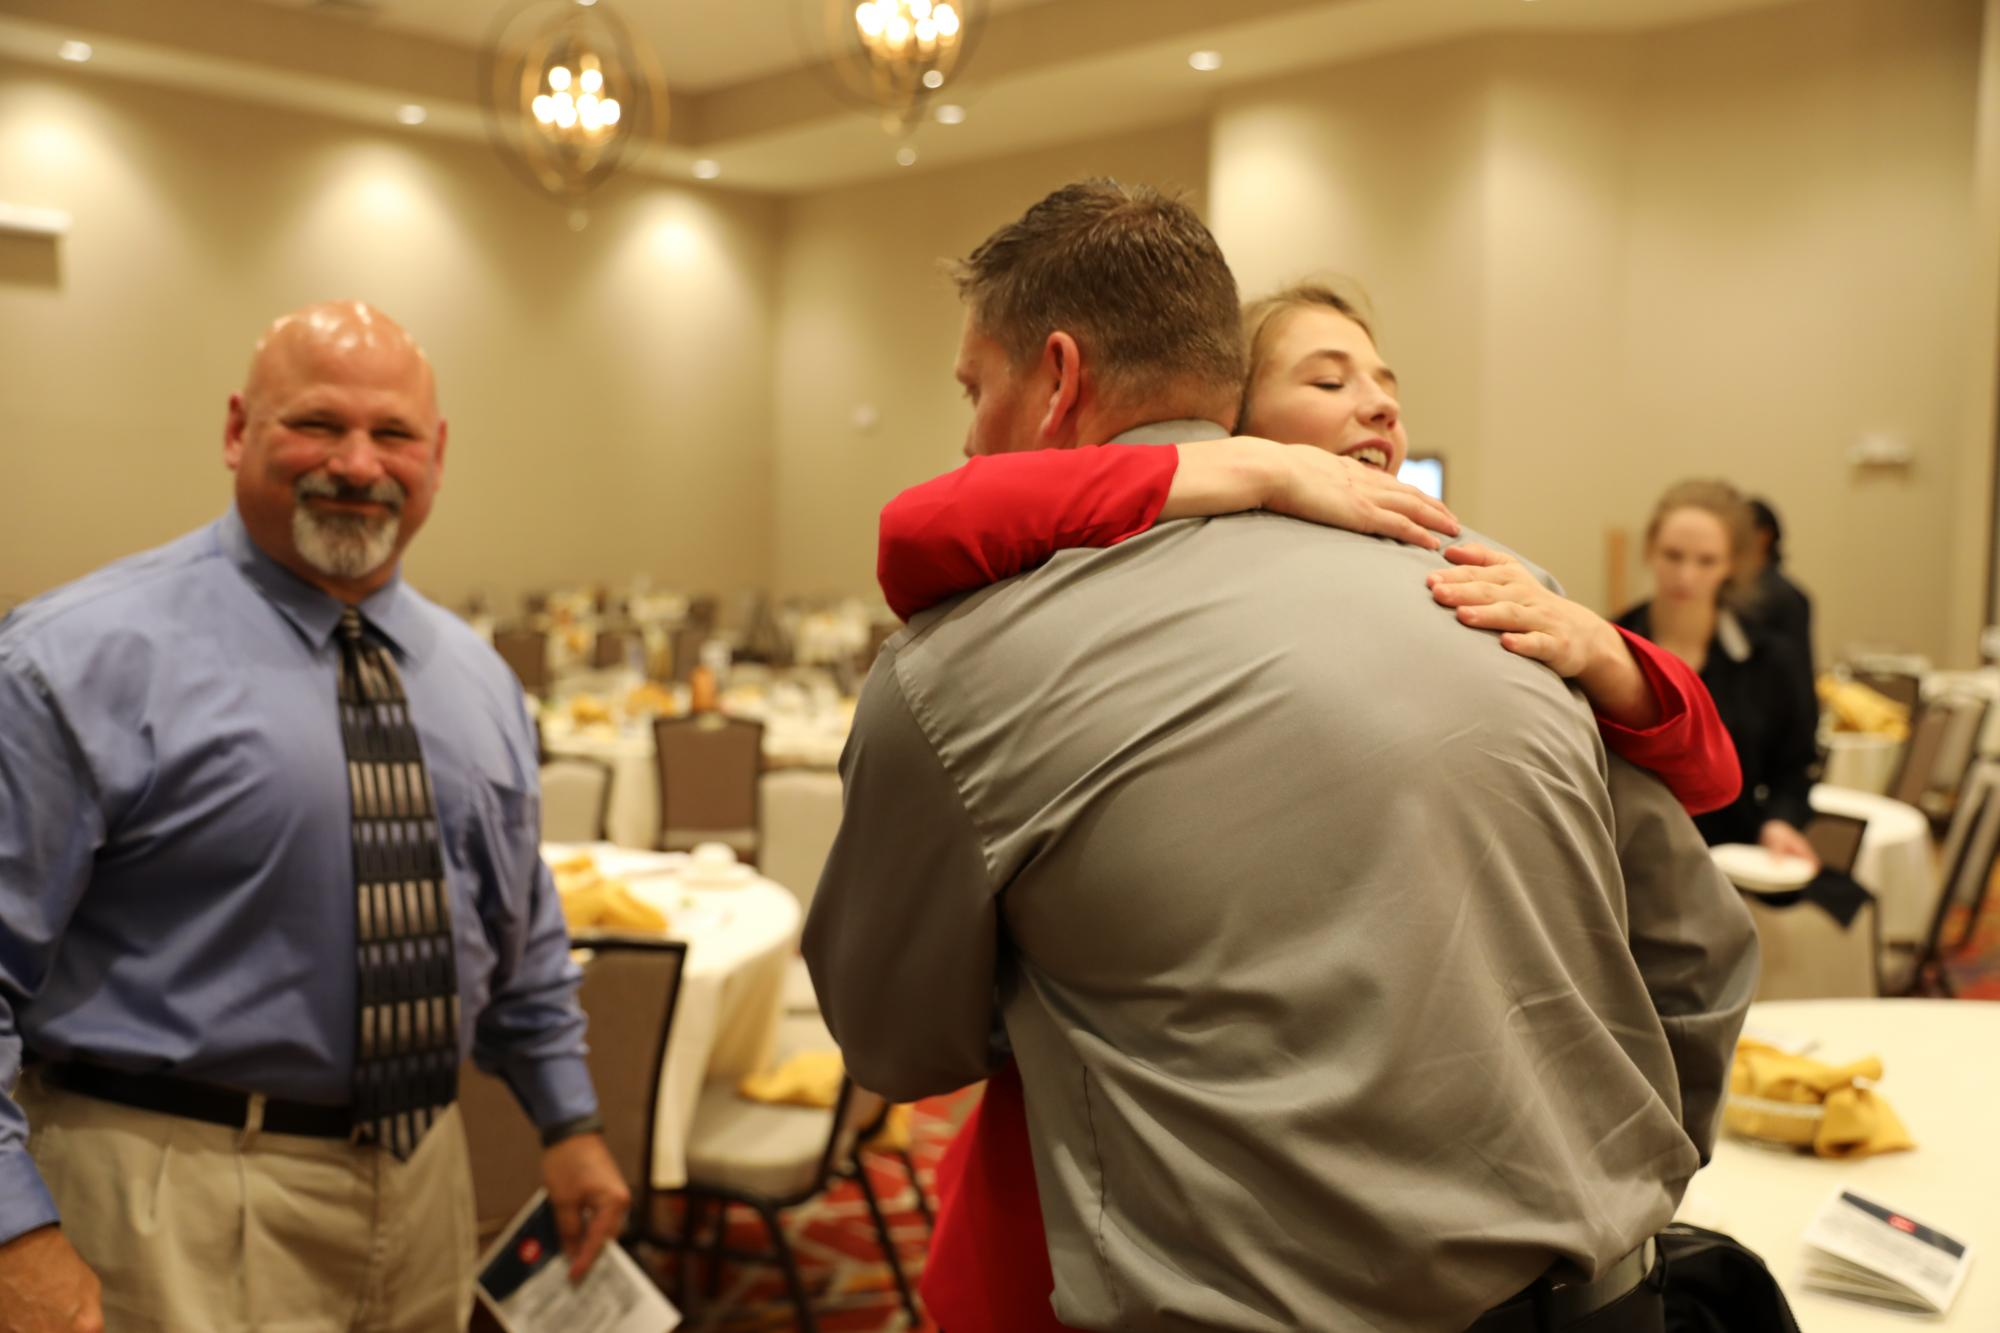 Sarah hugging her former Discovery wrestling coaches